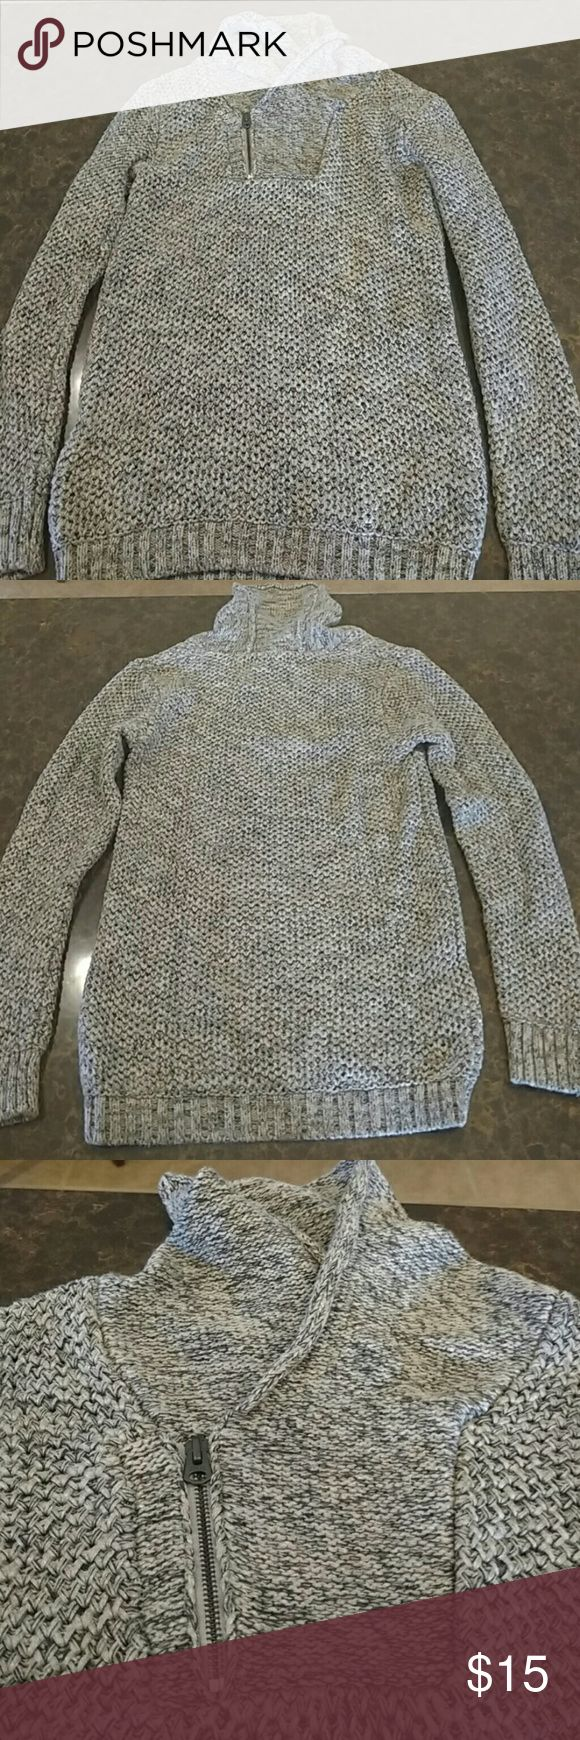 Men's Decree Half-zip Sweater In great condition, black and gray, half-zip with a cowl neck, 100% Cotton, gently used Decree Sweaters Zip Up